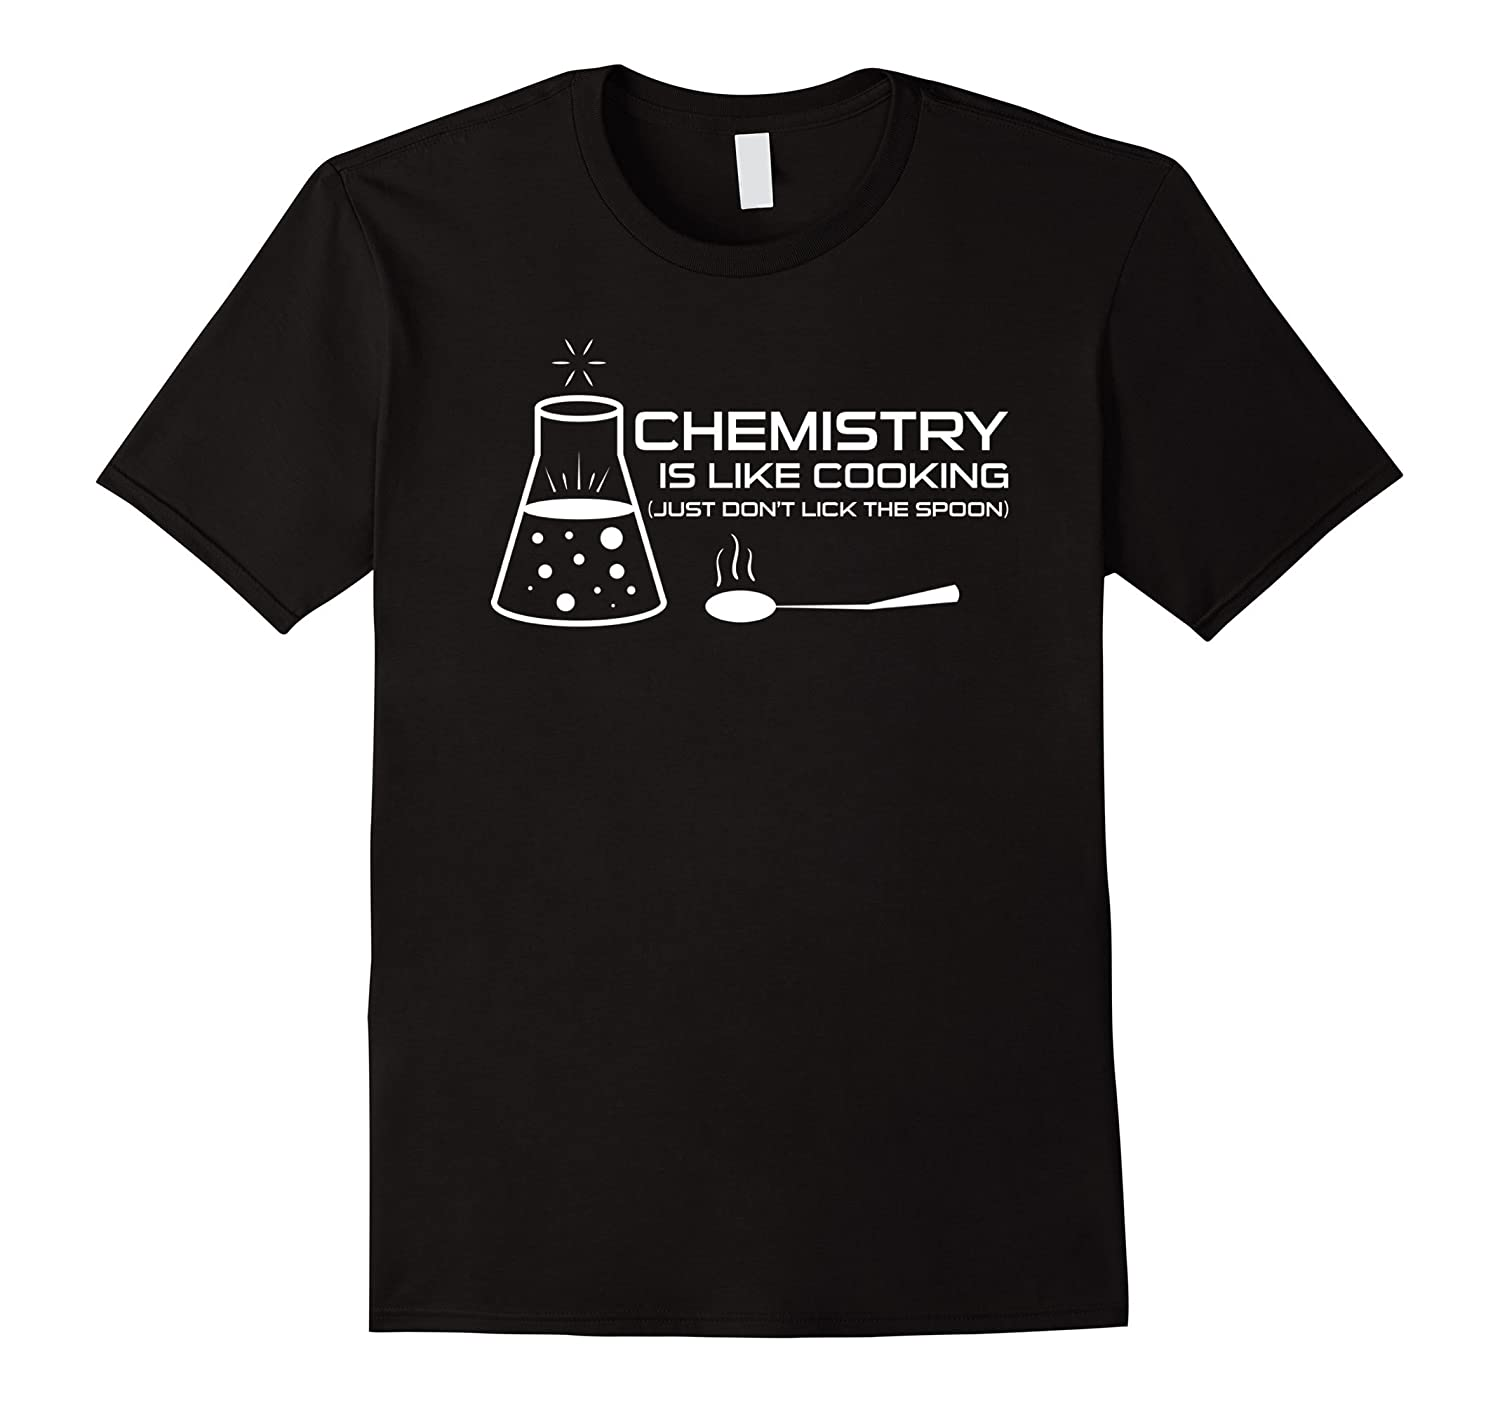 fa4effc5 Funny Chemistry Is Like Cooking Jokes Shirt Science Pun GIft-PL ...